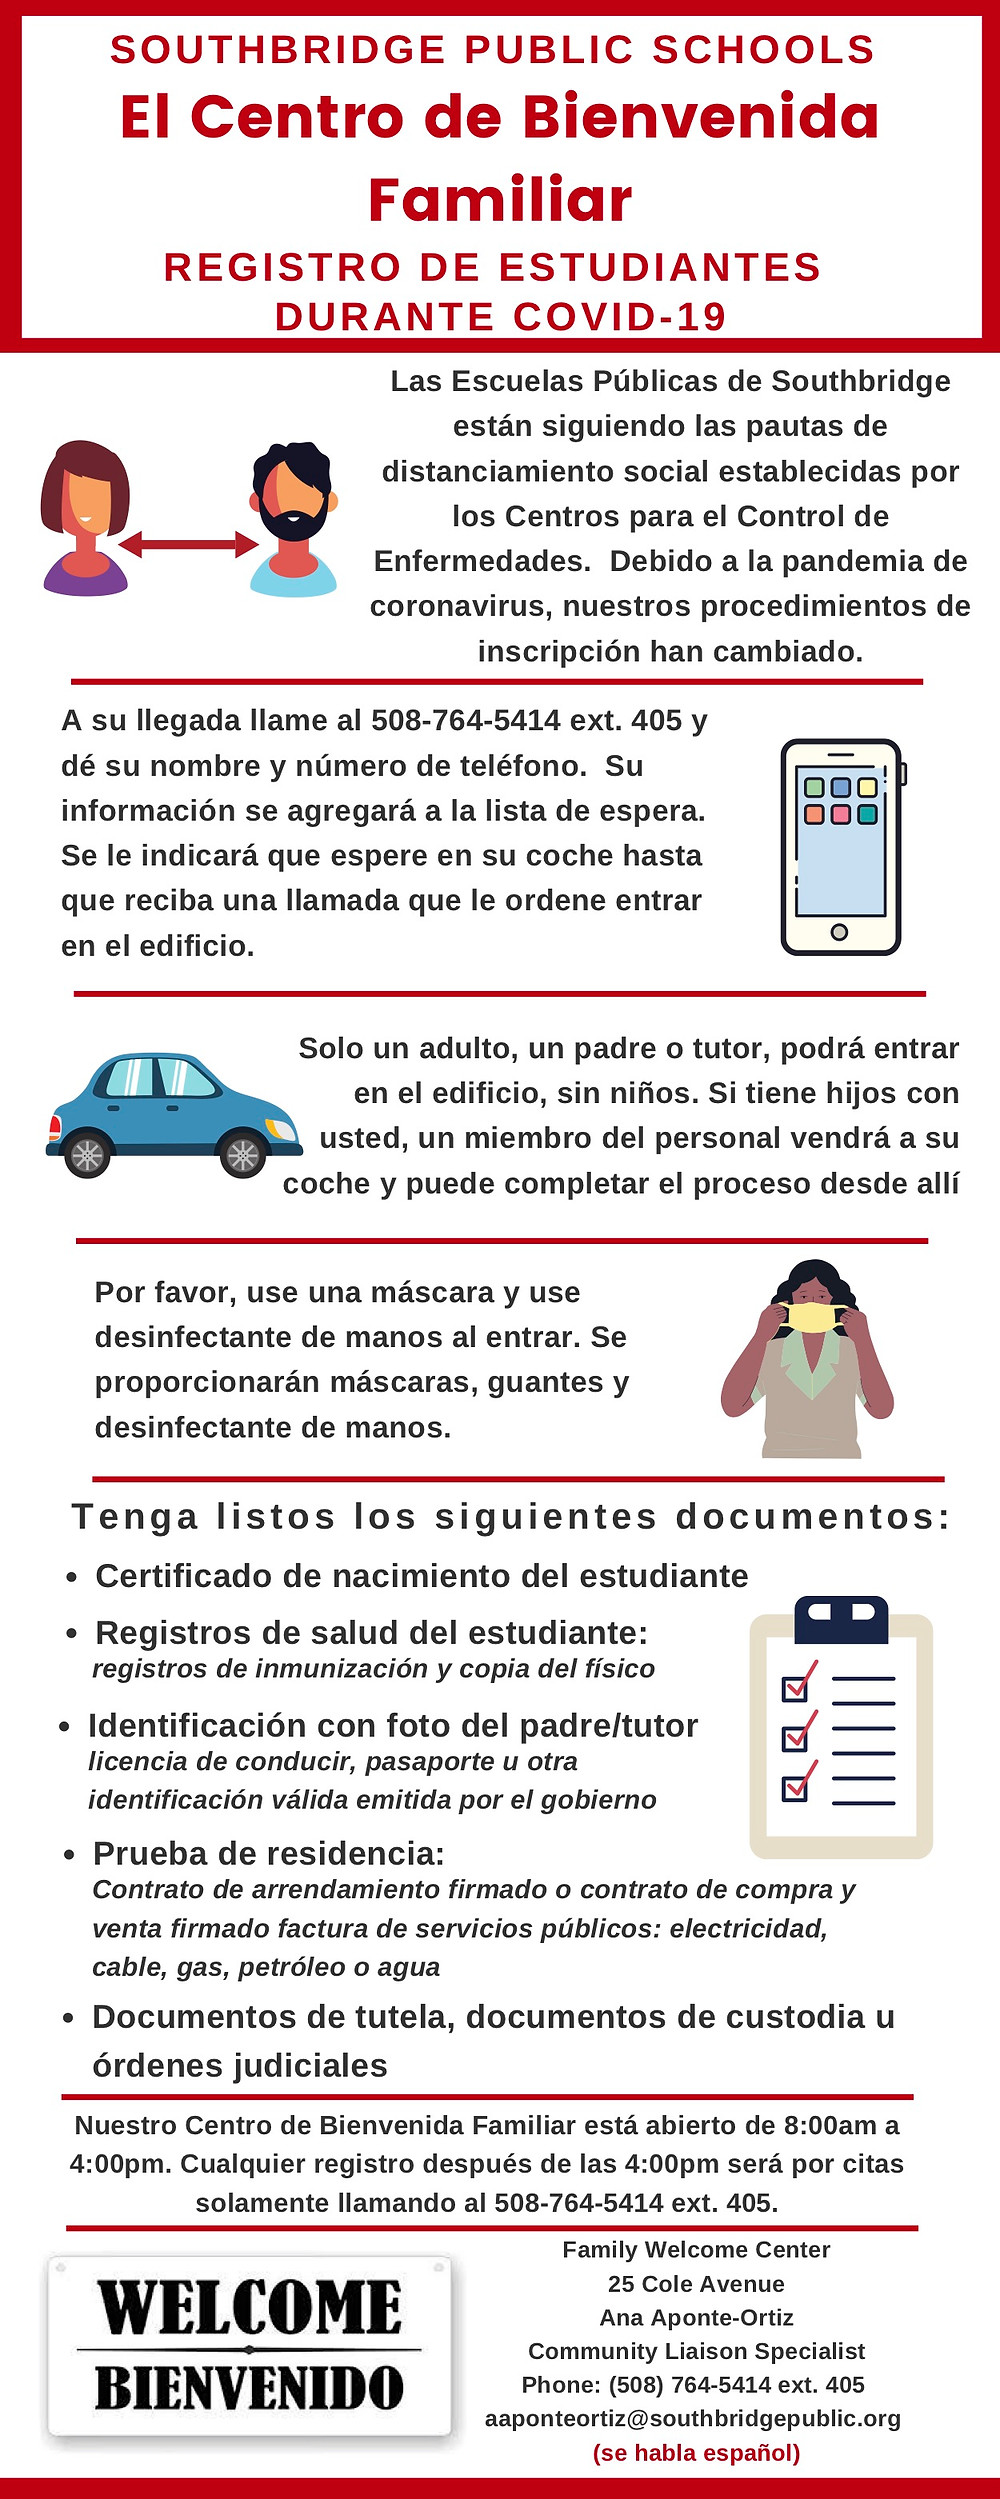 Infographic in Spanish. All wording in the infographic is also in the body of this blog post.